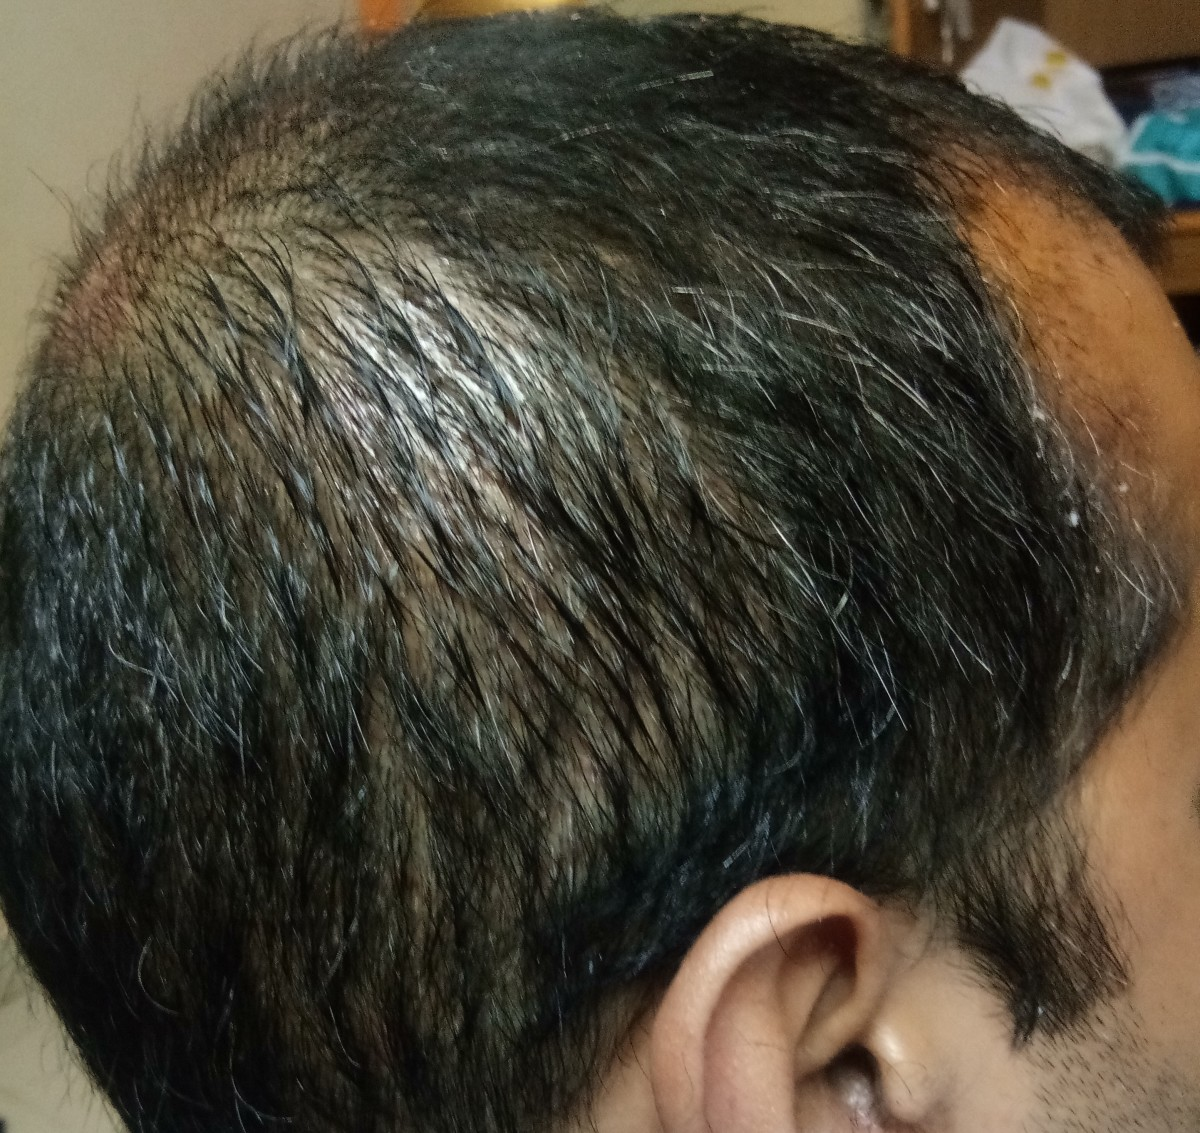 Side area - after PRP treatment